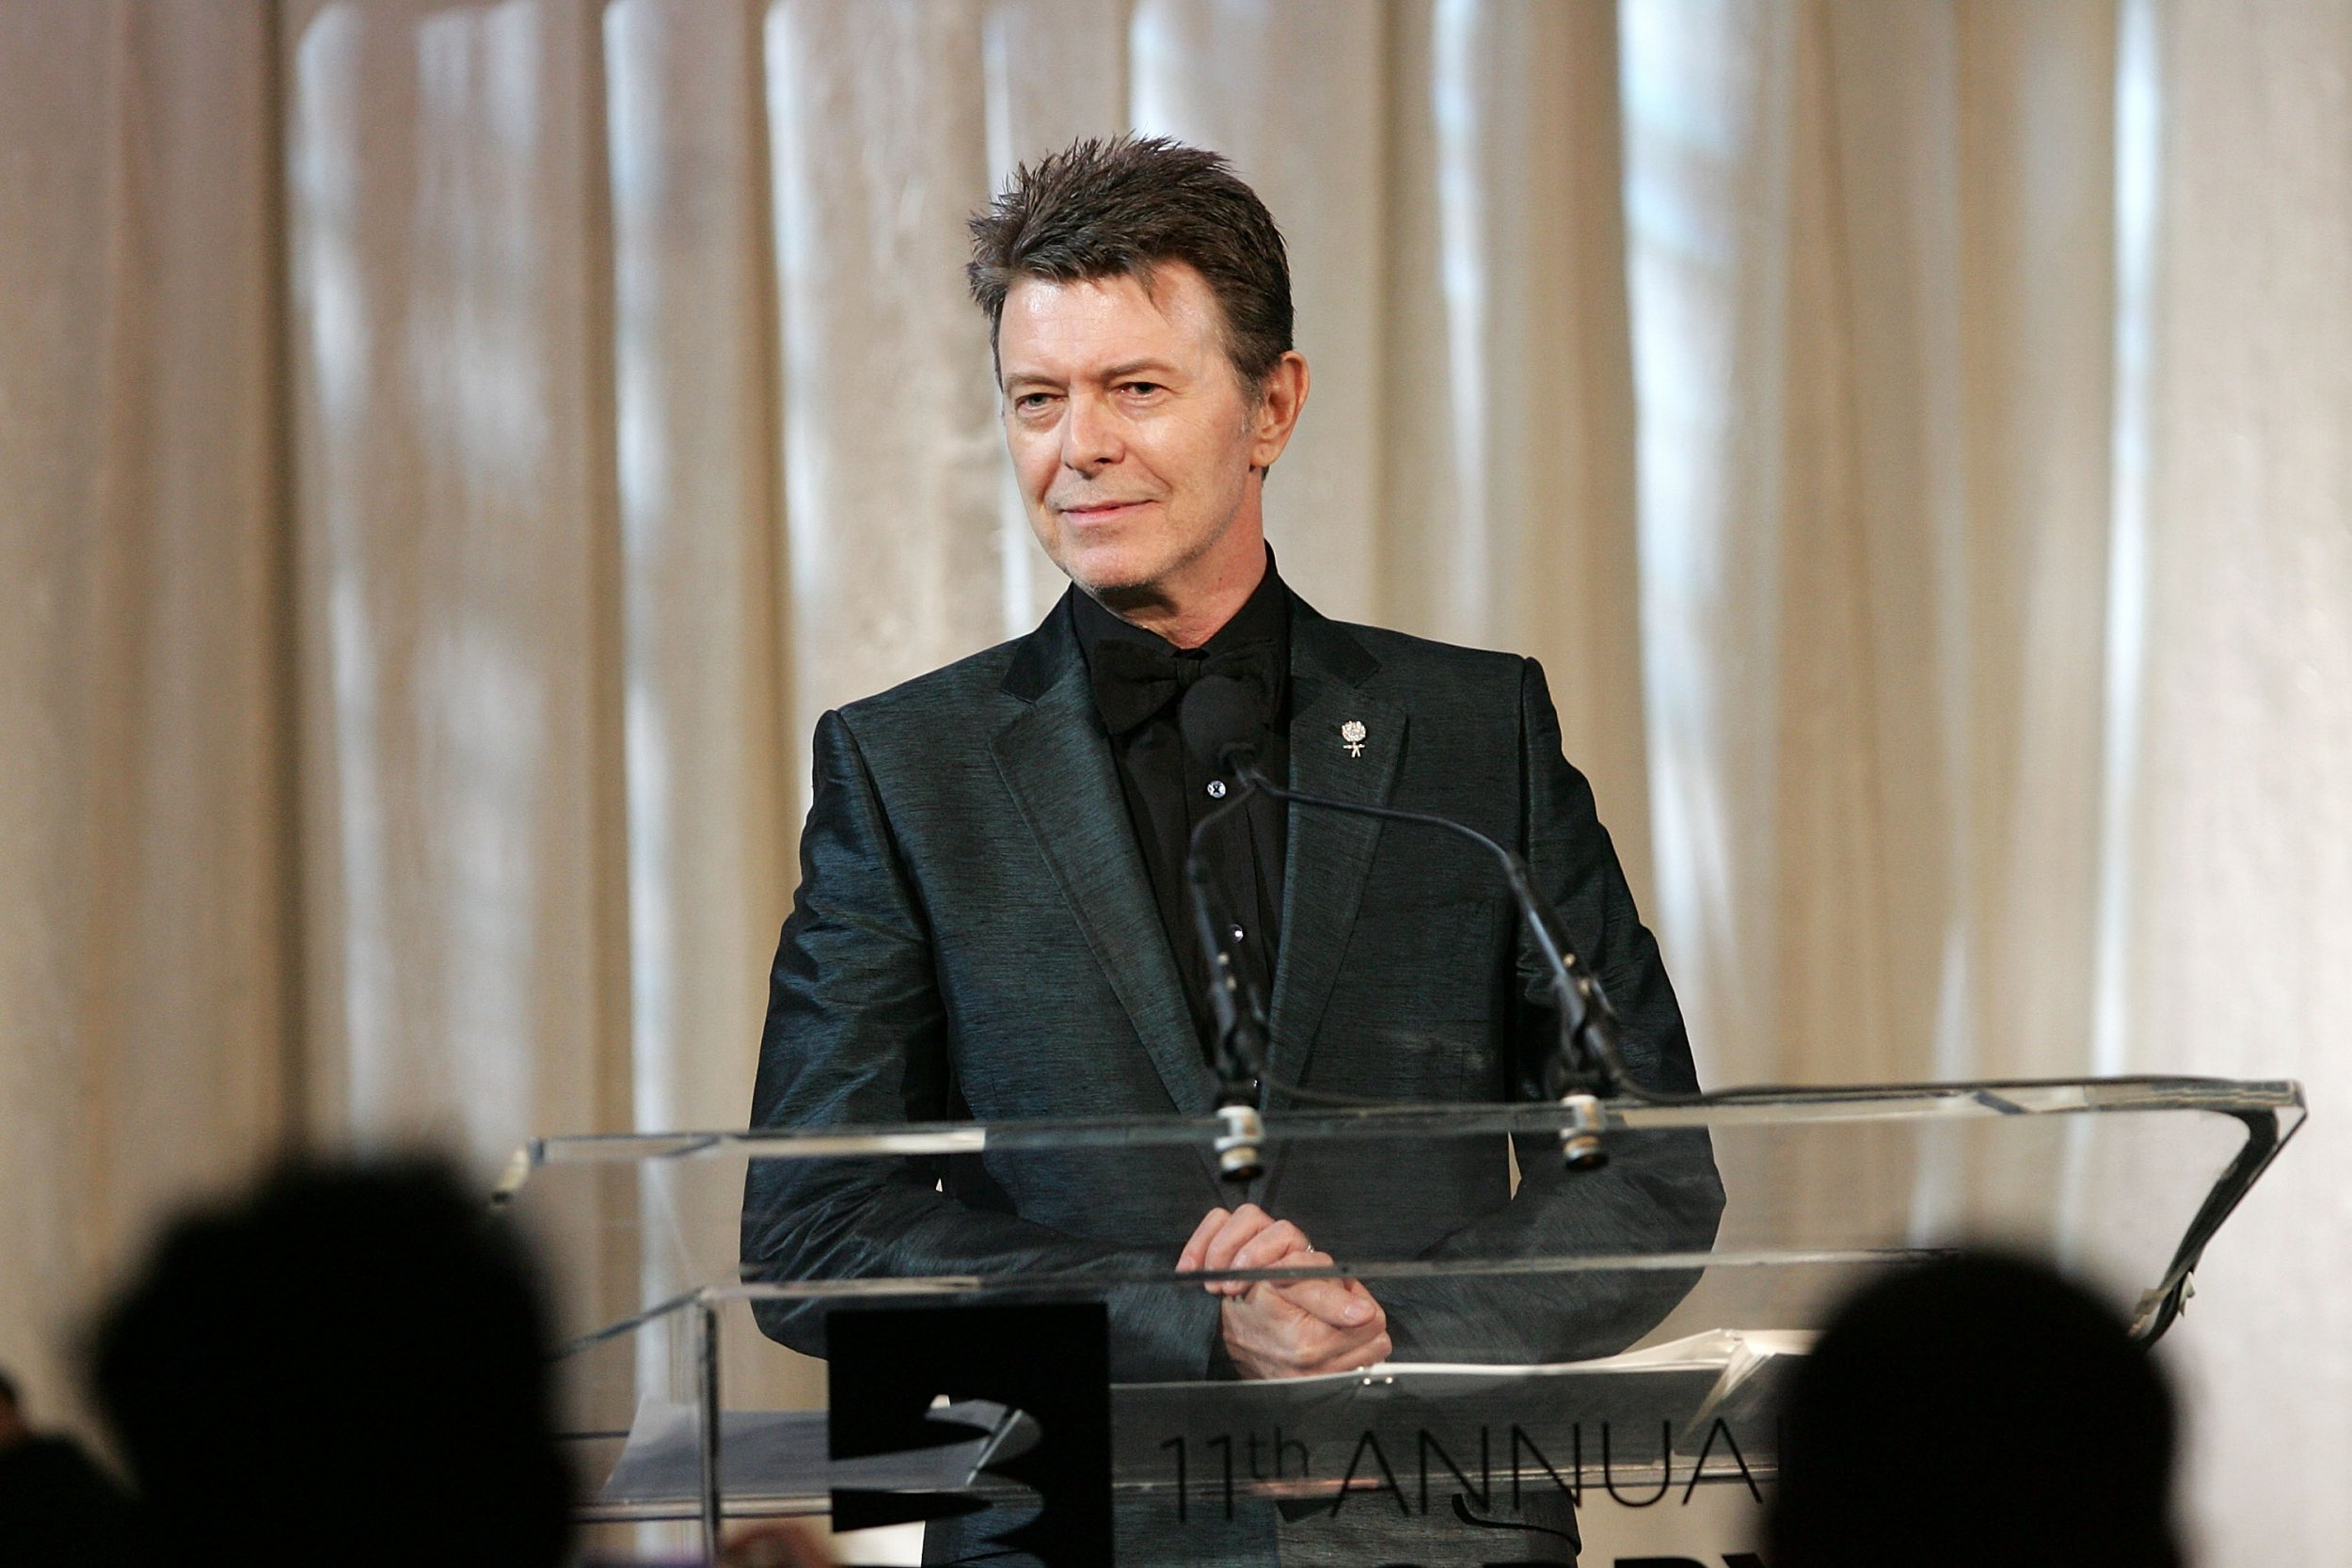 David Bowie in 2007